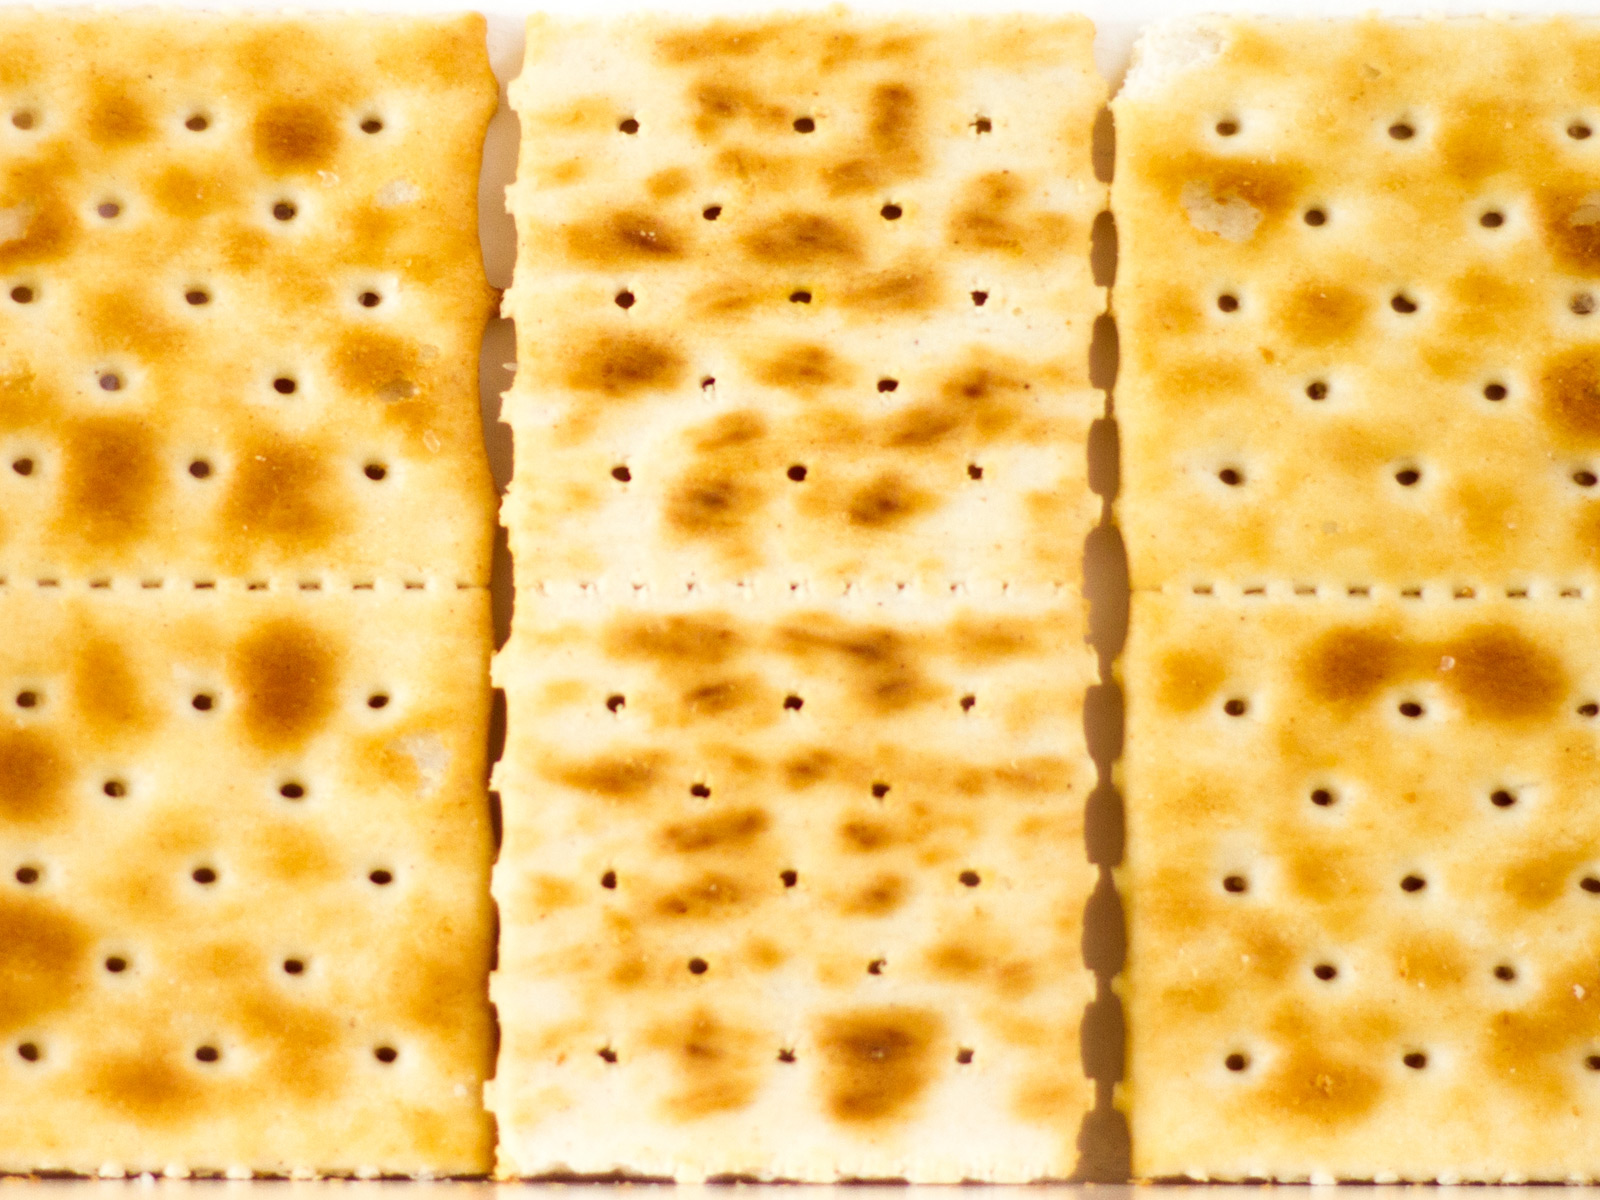 There's a Secret to Making Saltines Even Better